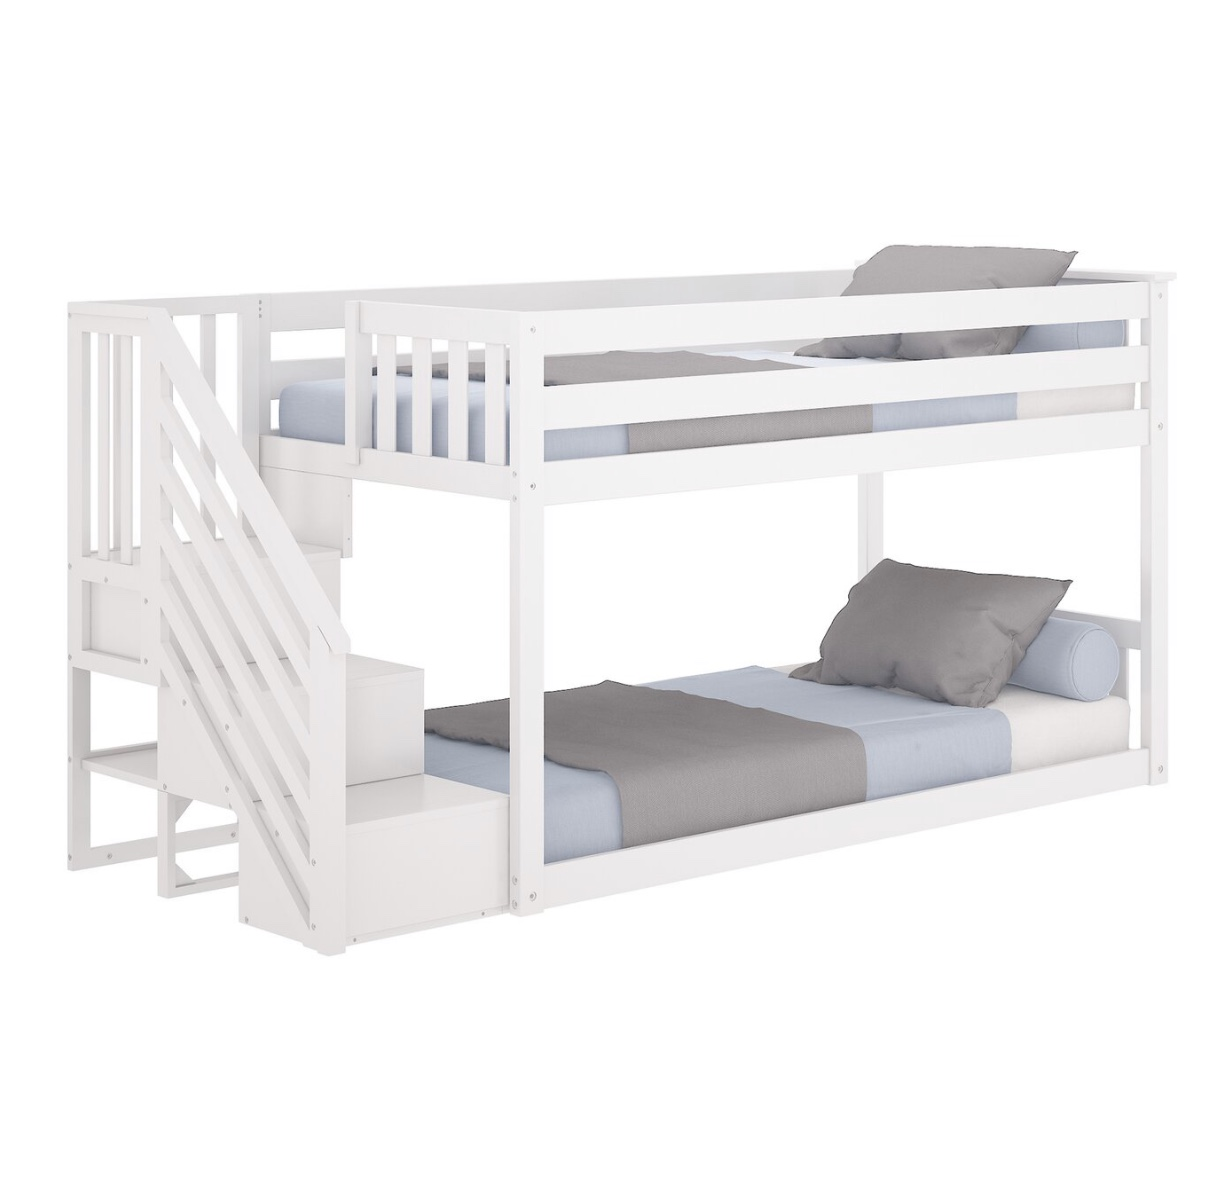 No 1539 Hot Selling Kids Bedroom Furniture Solid Pine Wood Twin Bunk Bed With Storage Stairs Buy Wooden Furniture Kids Bunk Bed Solid Pine Wood Product On Alibaba Com